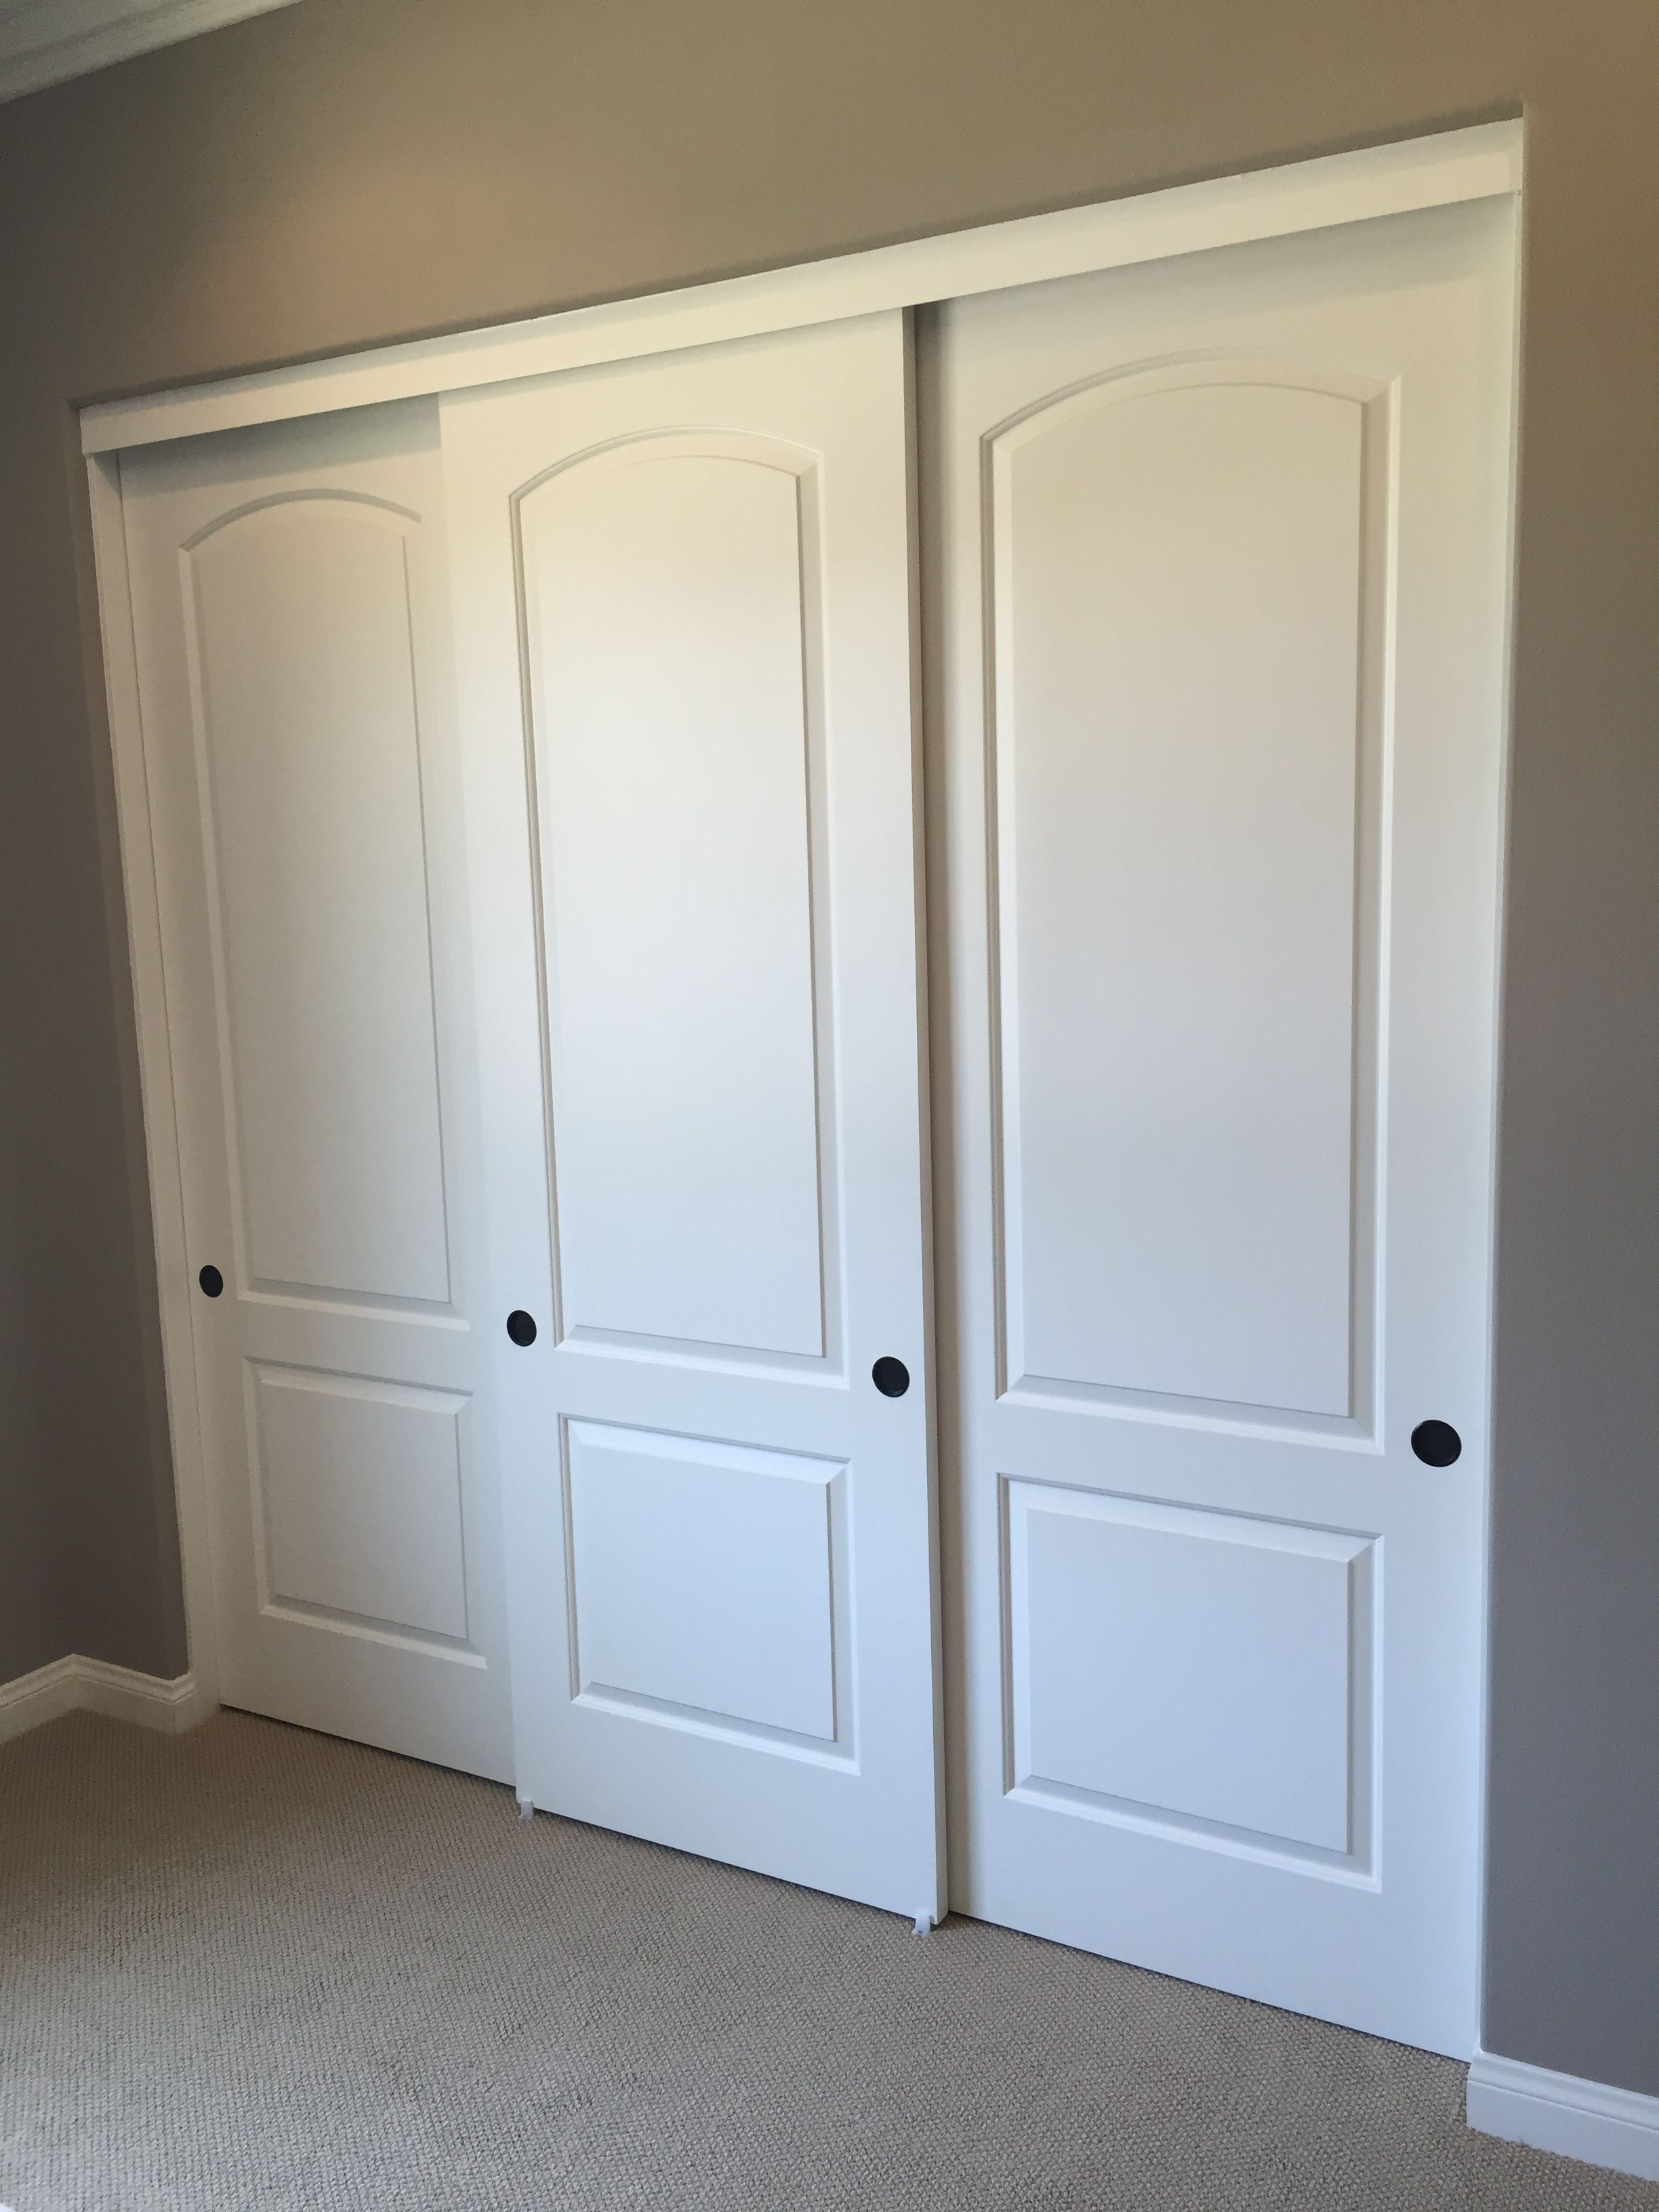 Sliding bypass closet doors of southern california are for Sliding closet doors